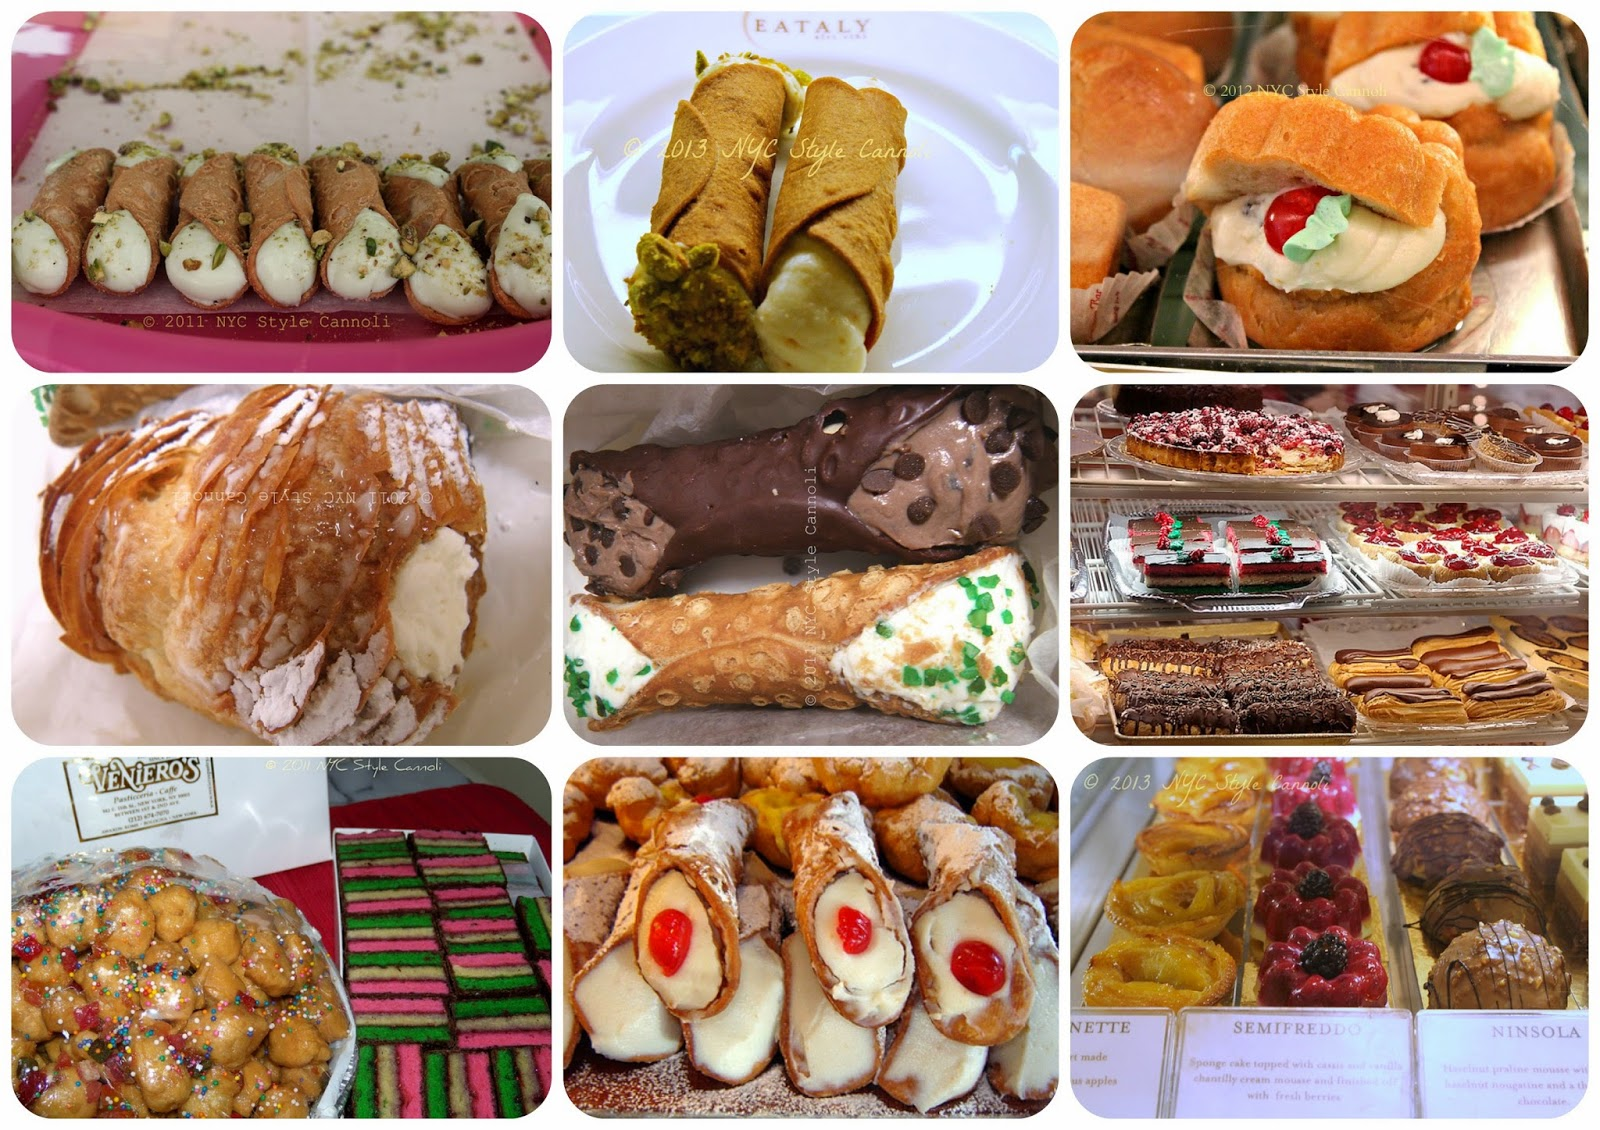 The 10 Best Italian Bakeries in New York City NYC, Style & a little Cannoli